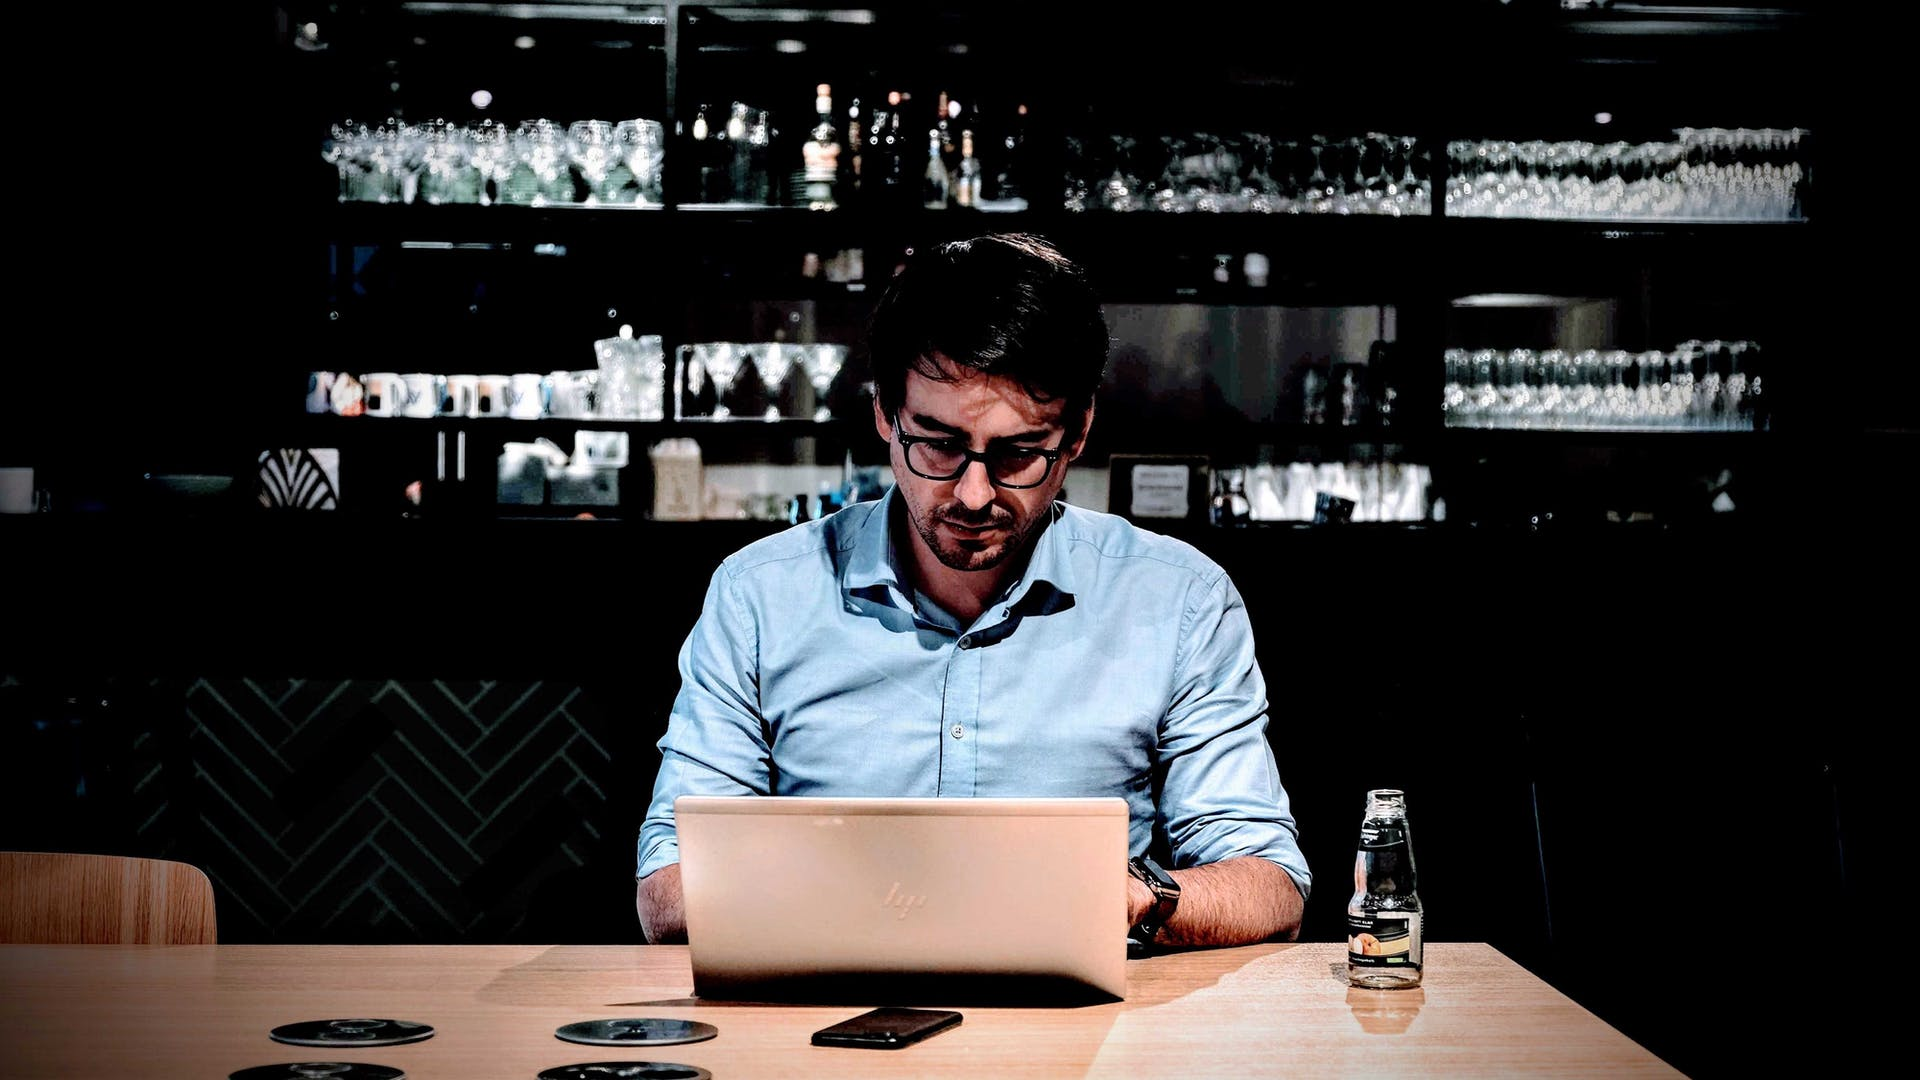 Man working on a laptop in a bar